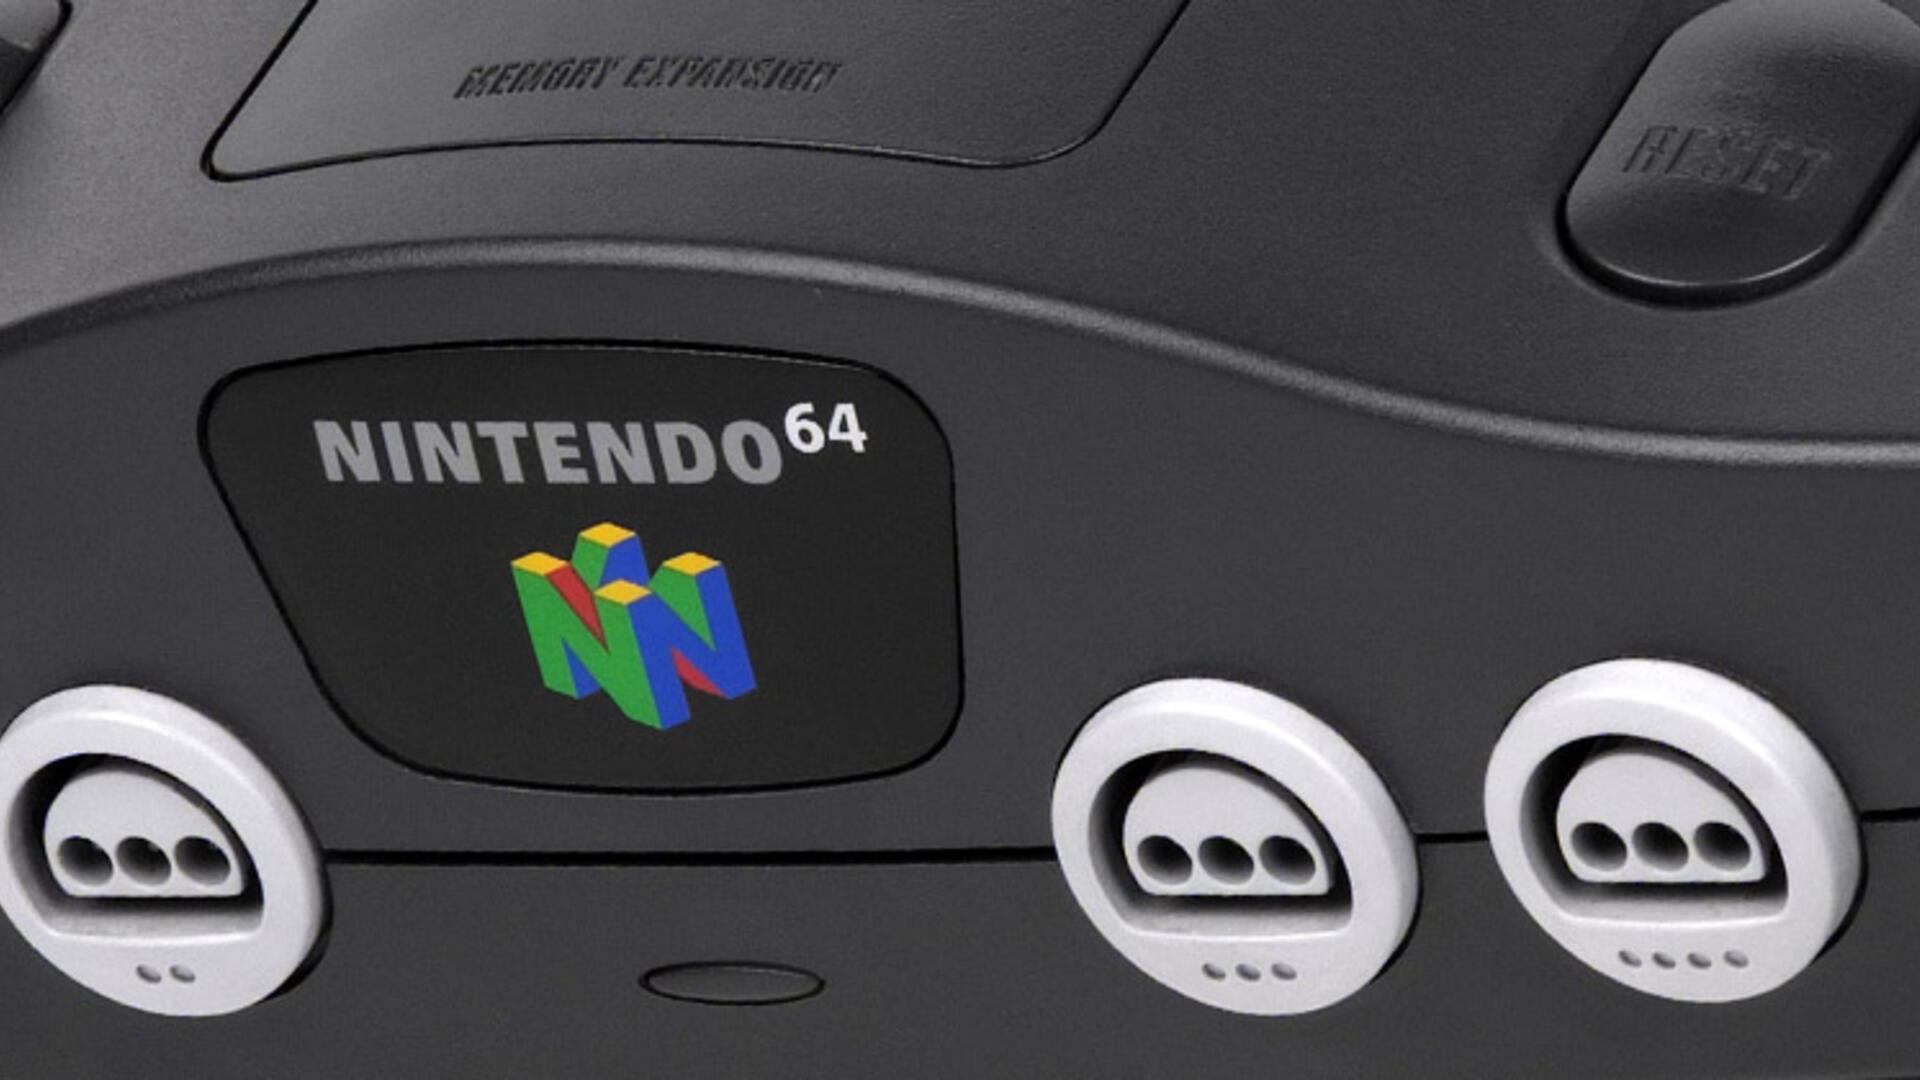 Nintendo Trademarks N64 for What Sure Sounds Like an N64 Classic Mini